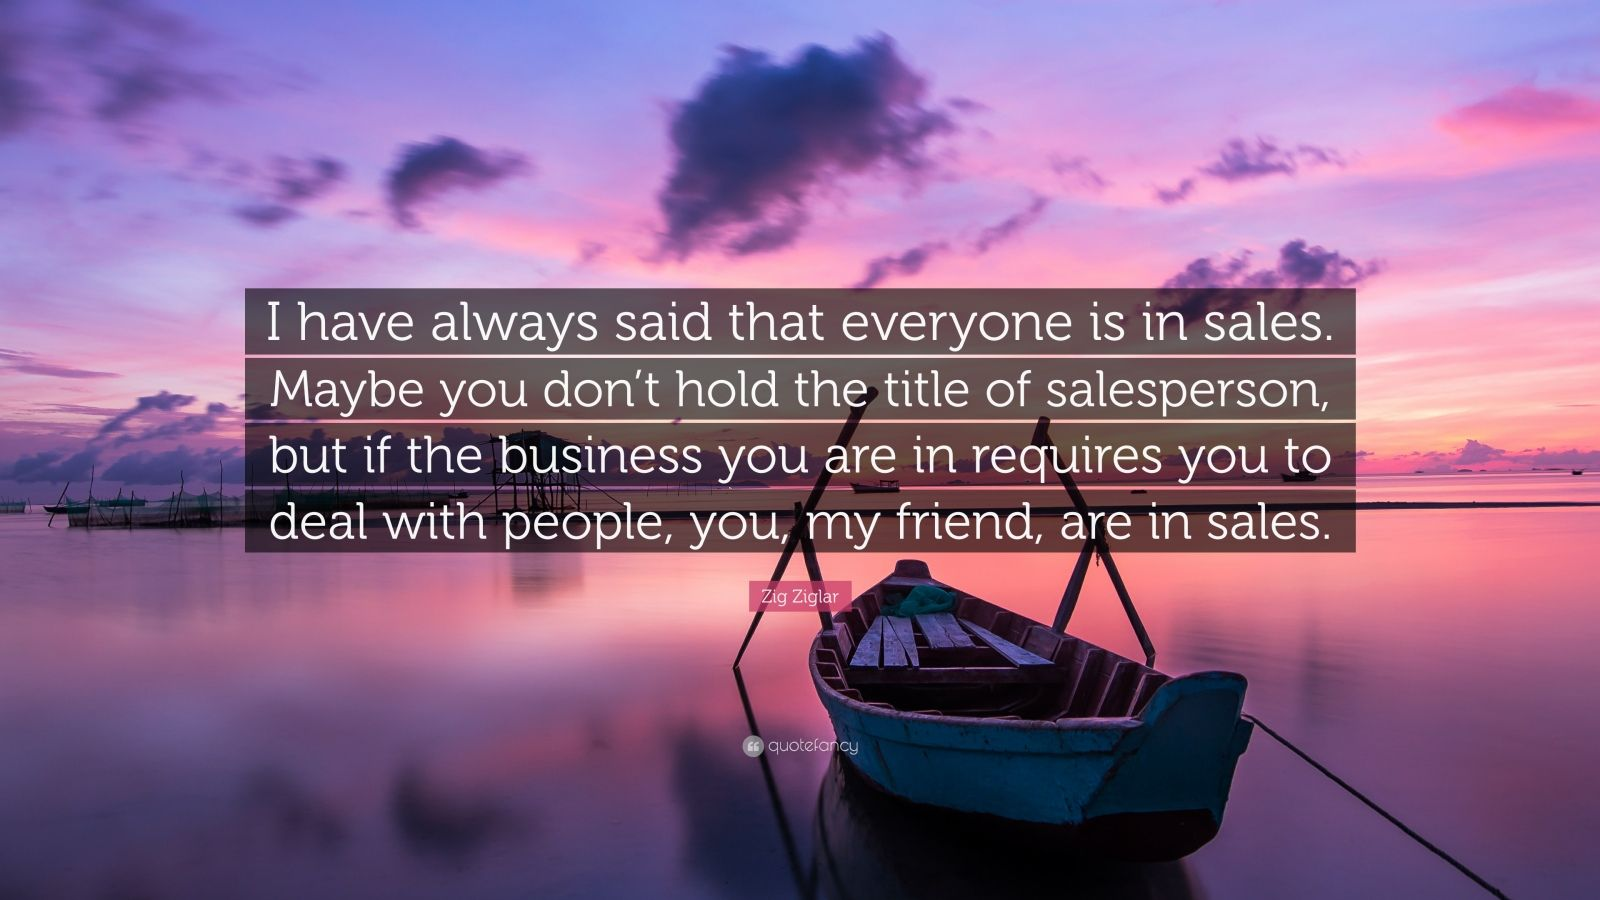 """Zig Ziglar Quote: """"I have always said that everyone is in sales. Maybe you don't hold the title of salesperson, but if the business you are in requires you to deal with people, you, my friend, are in sales."""""""